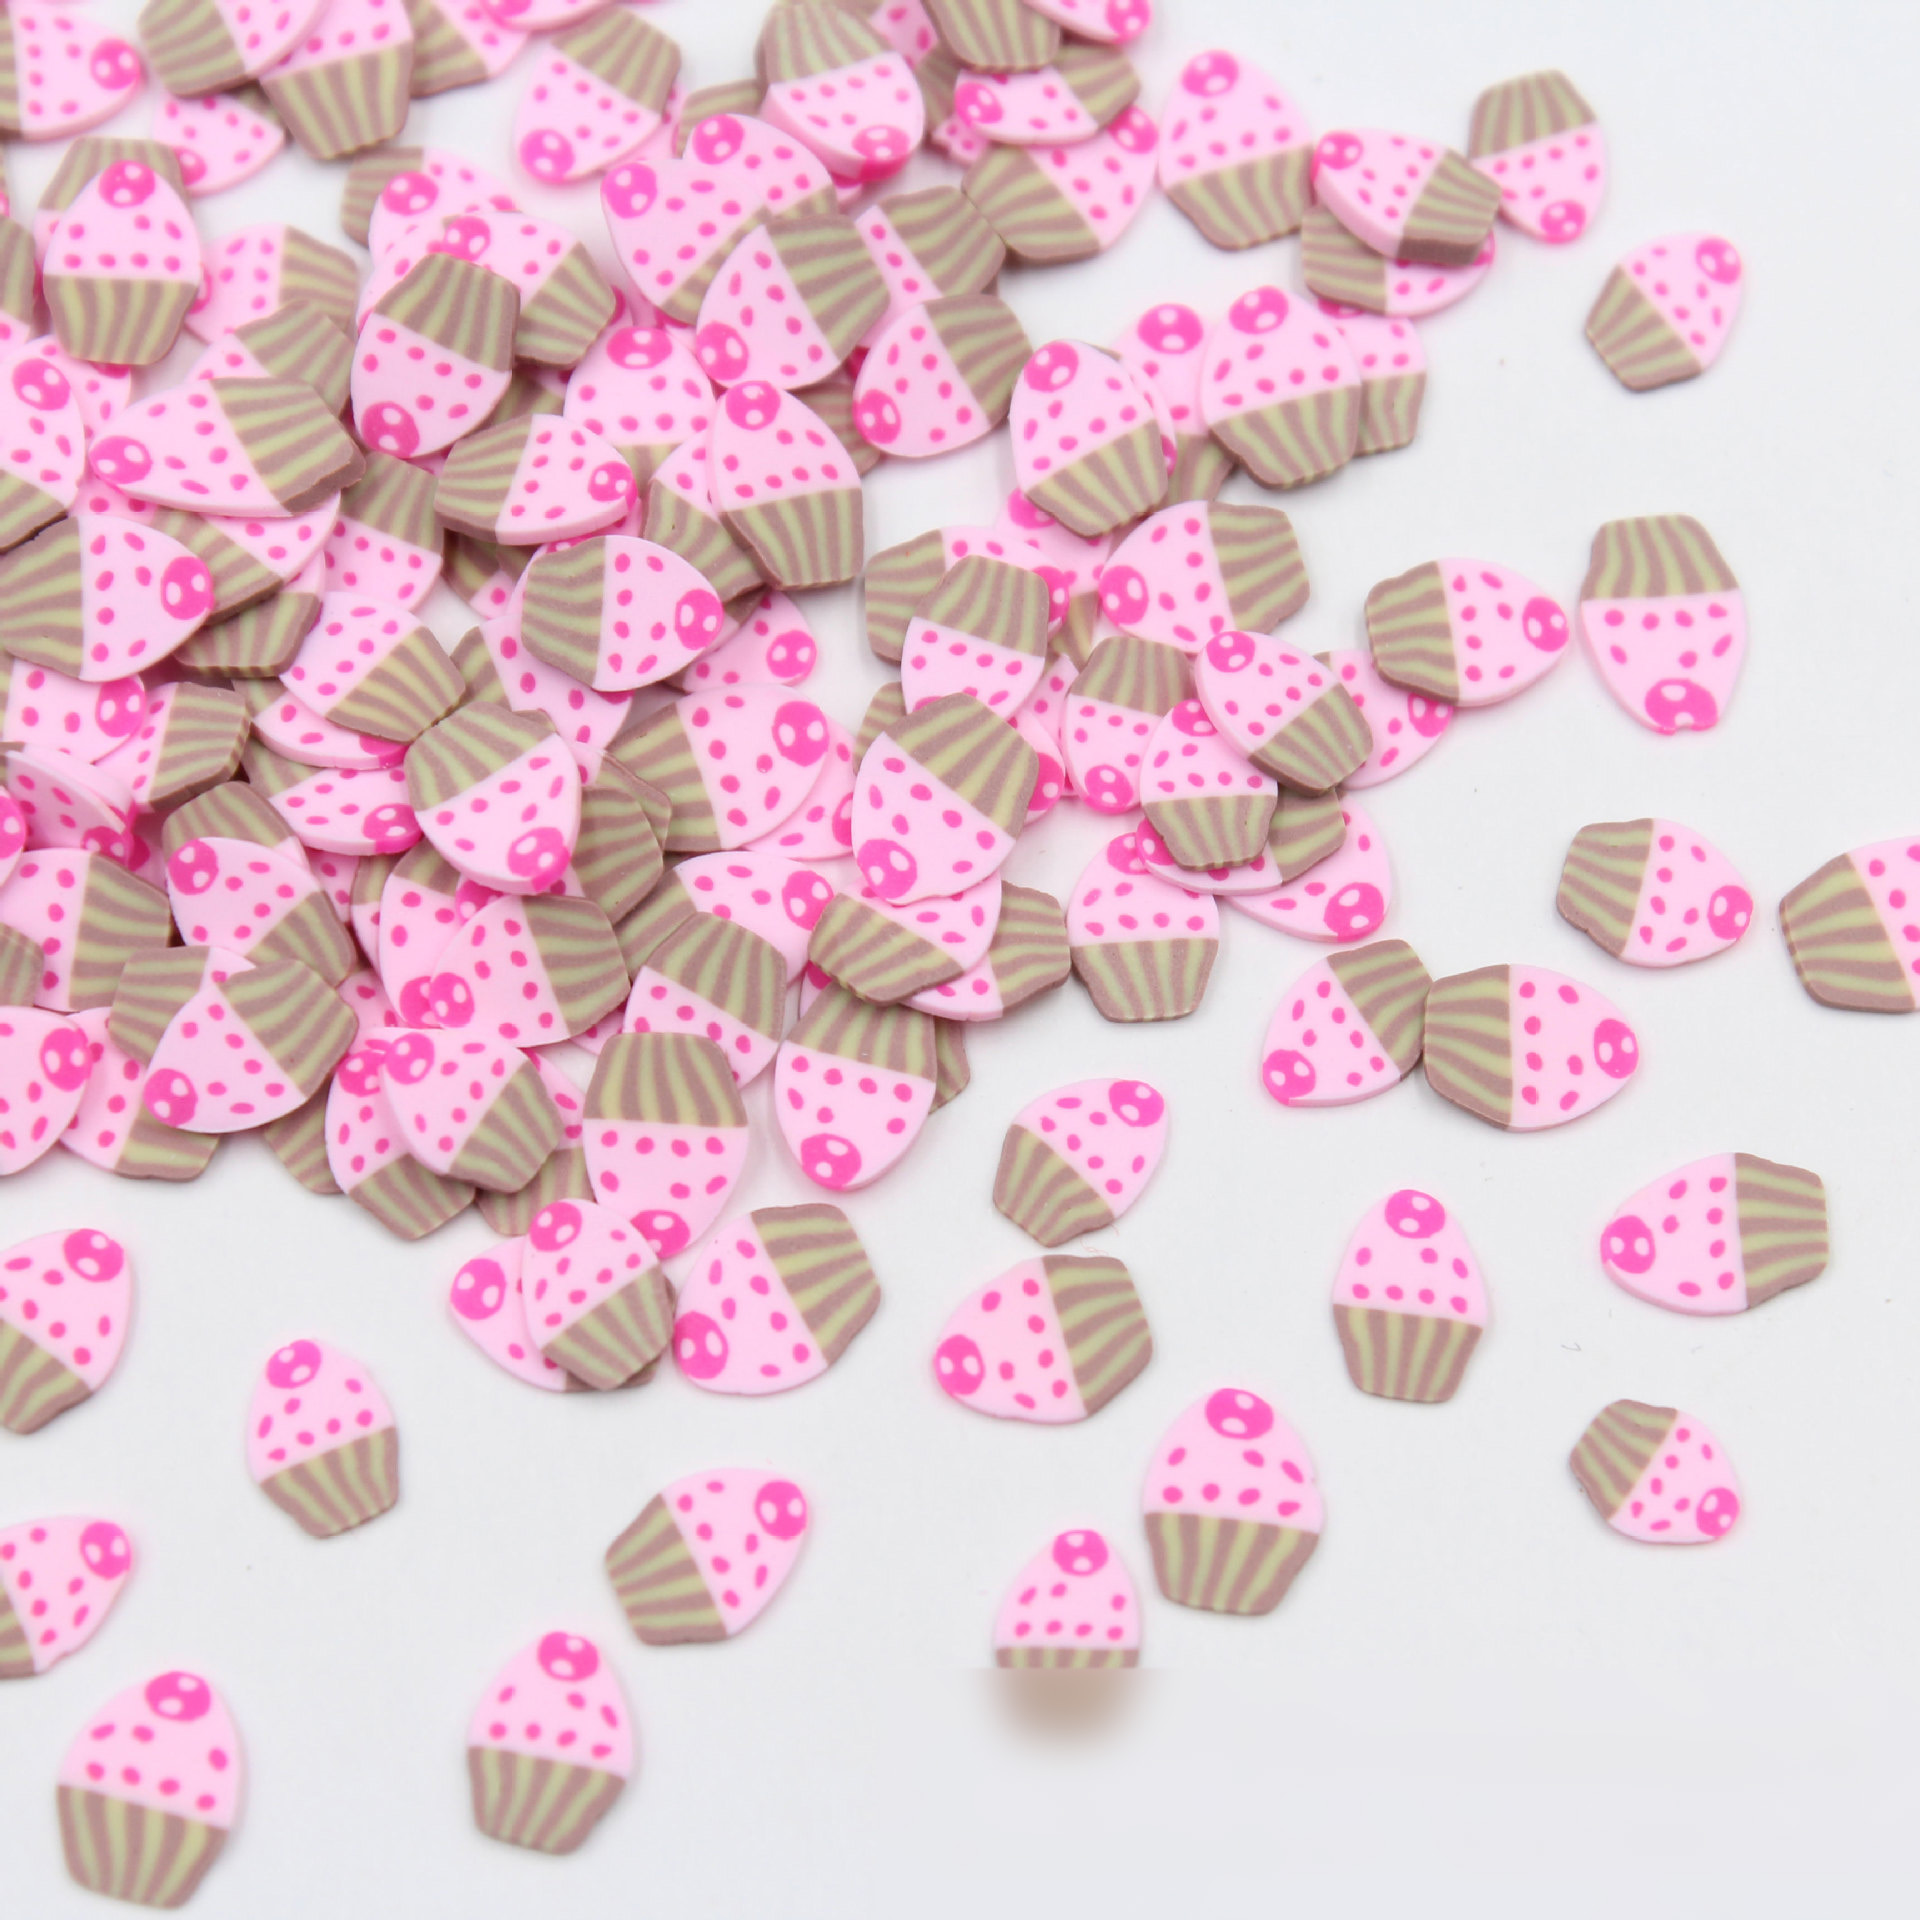 100g/lot Polymer Soft Clay Cake Slices Sprinkles For Craft DIY Making Nail Art Decorations Scrapbooking Phone Case Accessories